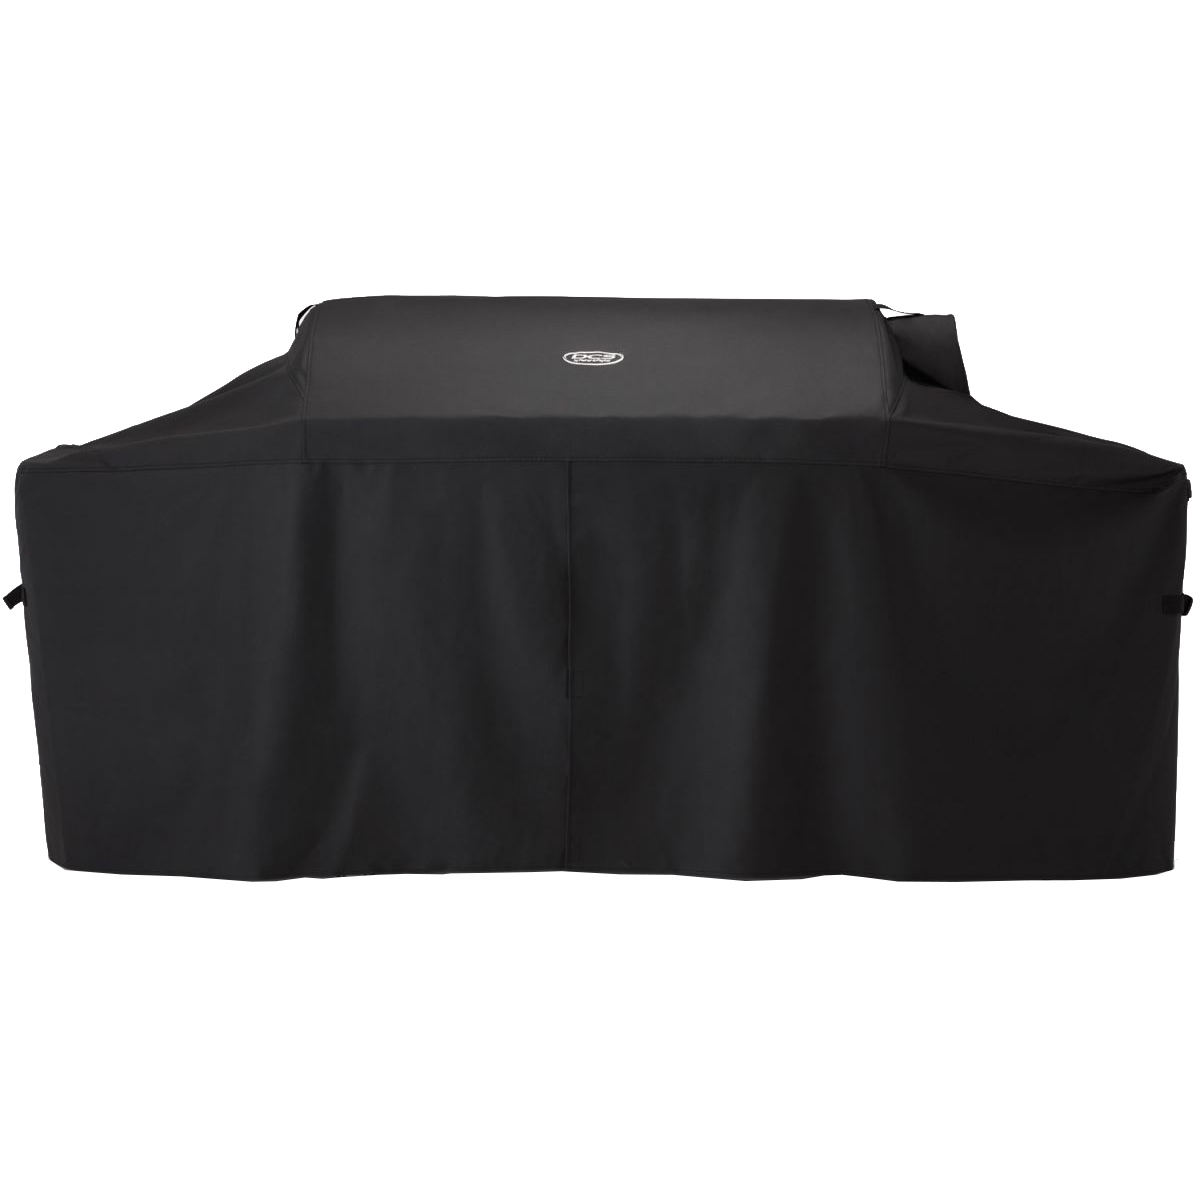 DCS Grill Cover for 30 inch Cart Mounted Grills with Side Burner